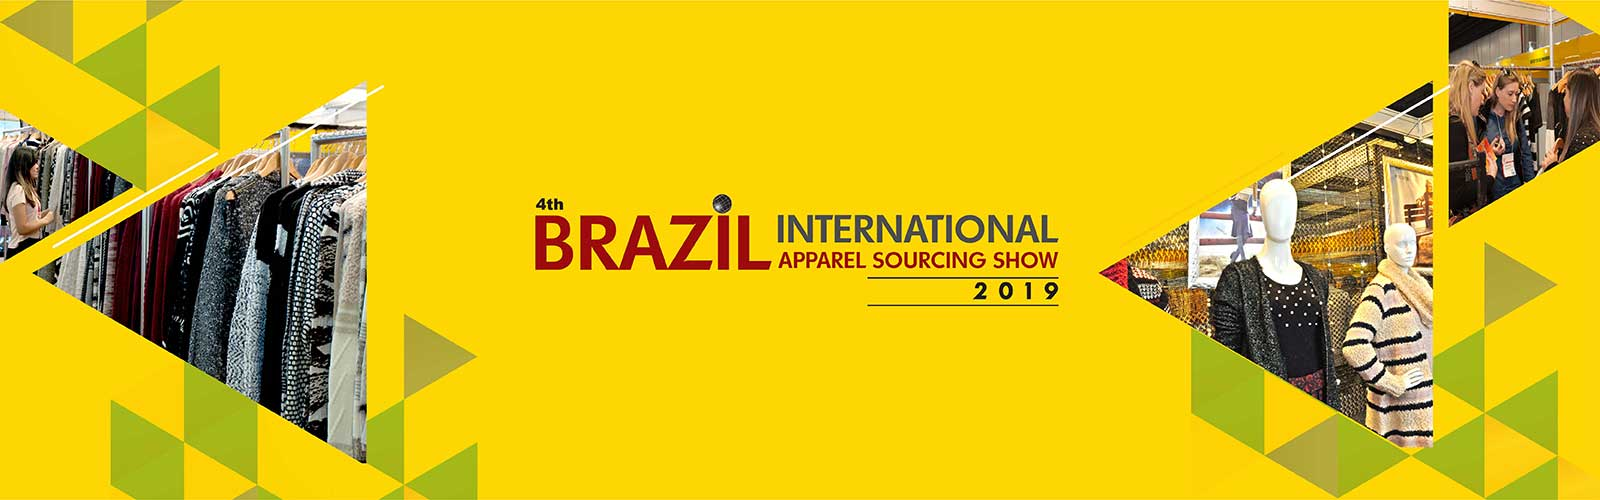 4th Brazil Int'l Apparel Sourcing Show 2019 – Sao Paulo